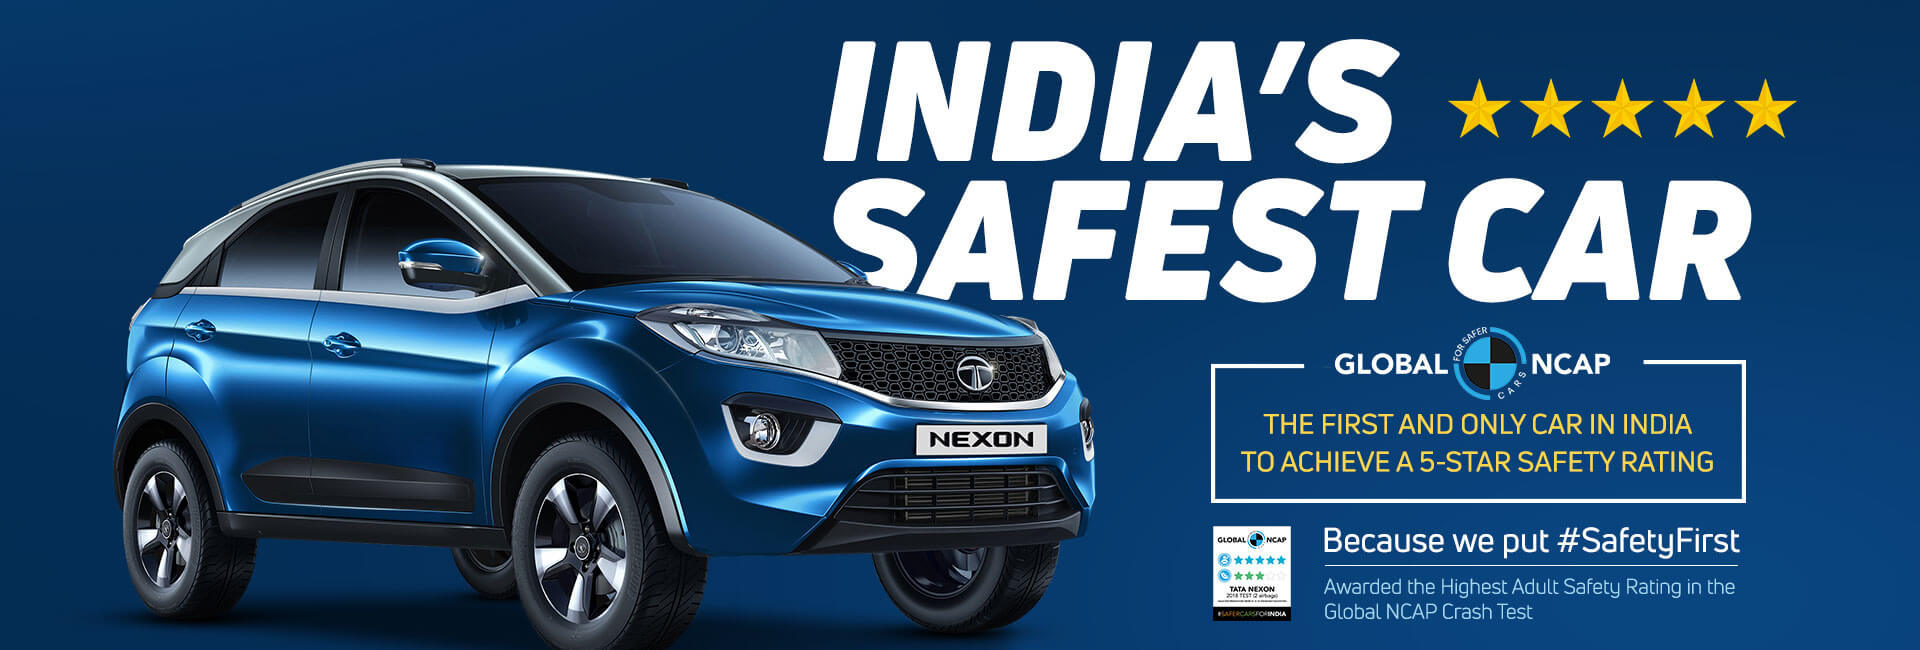 Tata Nexon - Made to Protect You on the Road